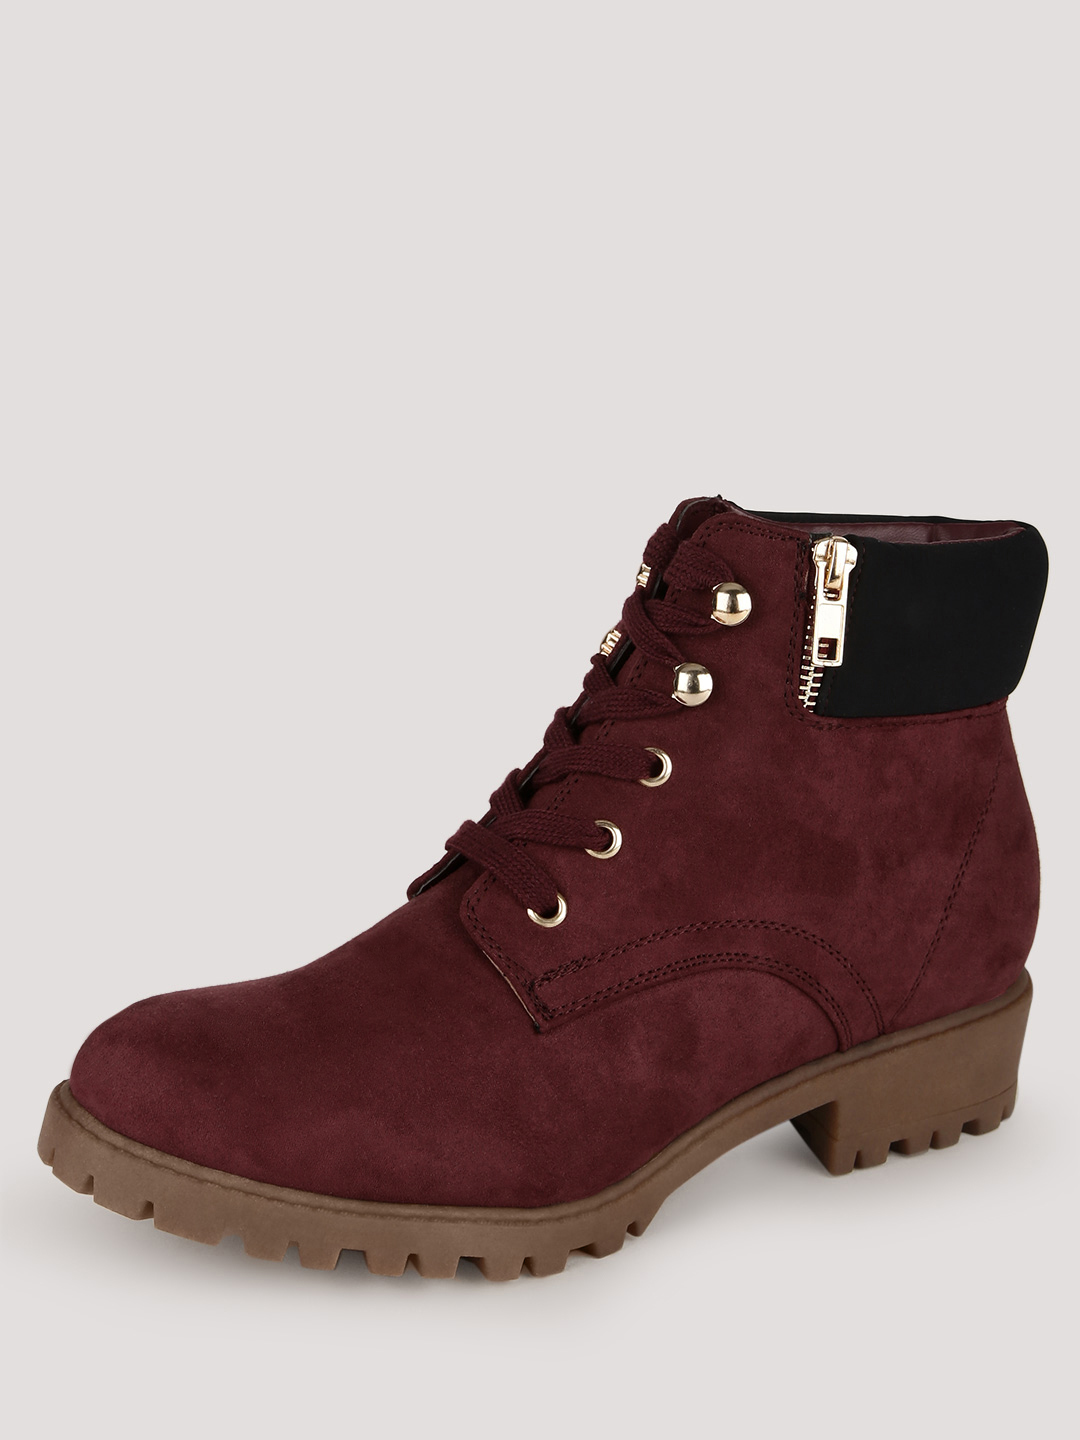 New Look Red Worker Boots 1